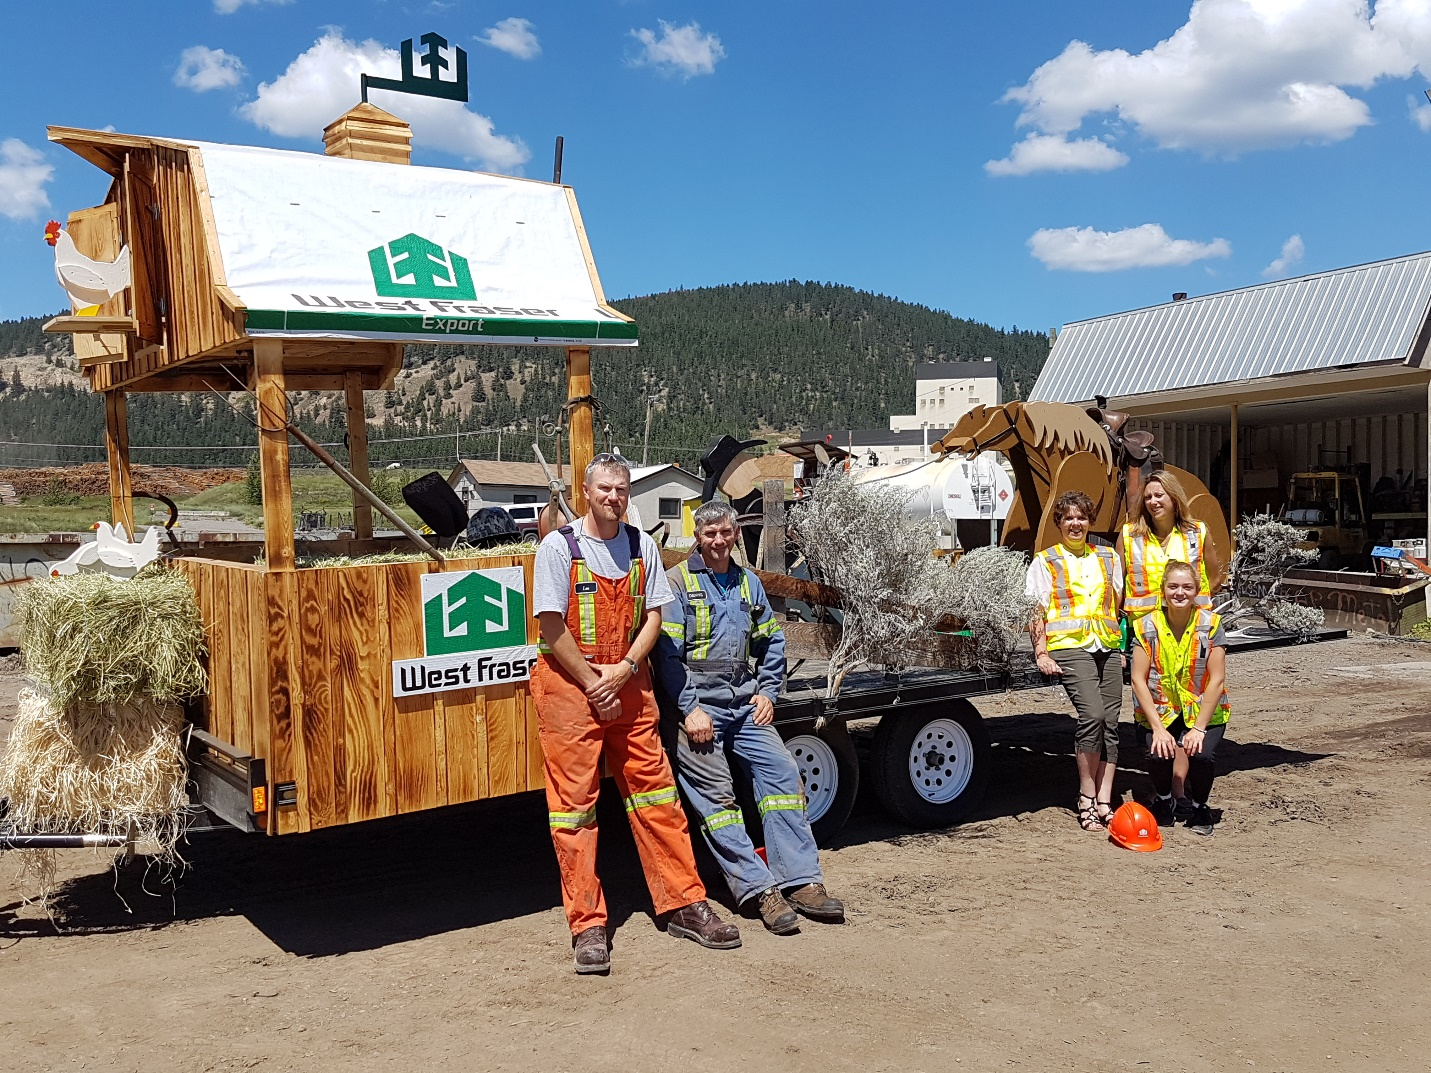 Credit: Gerda Knuff. Here is most of the crew that worked on the float. Our float included a beautiful barn built by the carpenter at the Sawmill, several props (horse, cowboy, chickens, fence, etc.) built by the plywood plant carpenter, and a live band (mainly West Fraser employees)